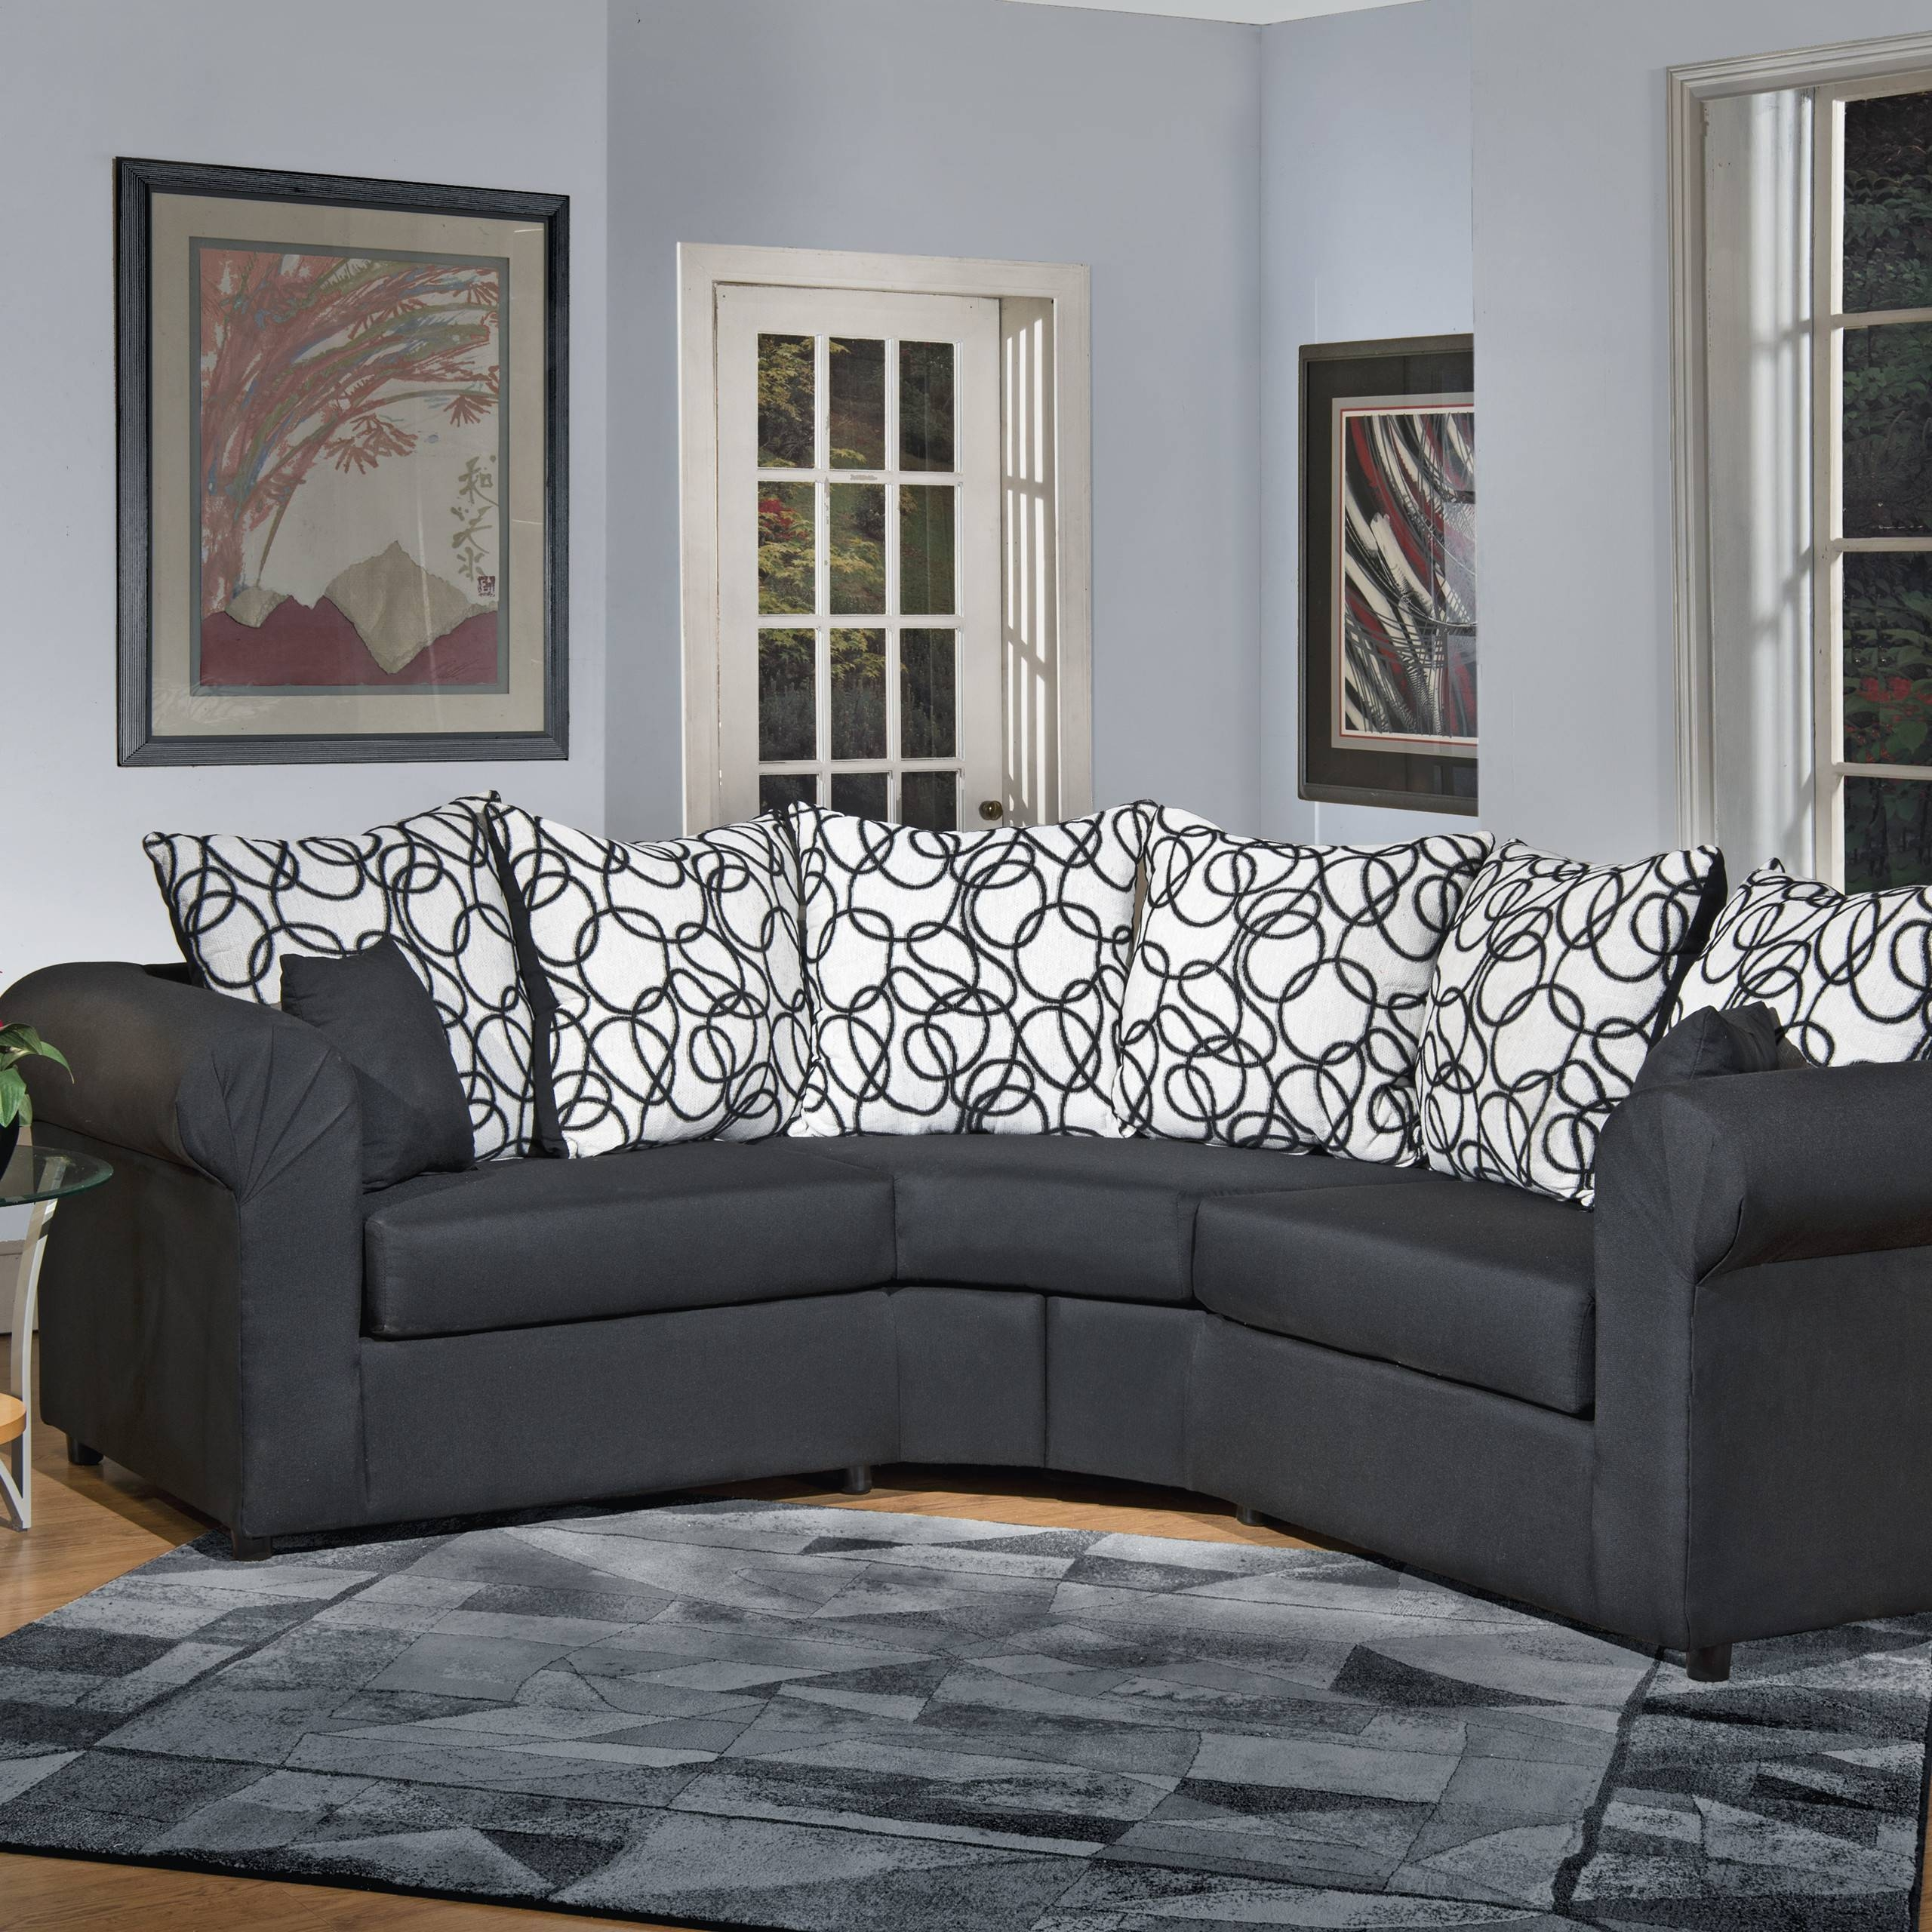 Furniture & Sofa: Small Sectionals For Small Spaces | Sectional Within Small Spaces Configurable Sectional Sofas (View 12 of 15)